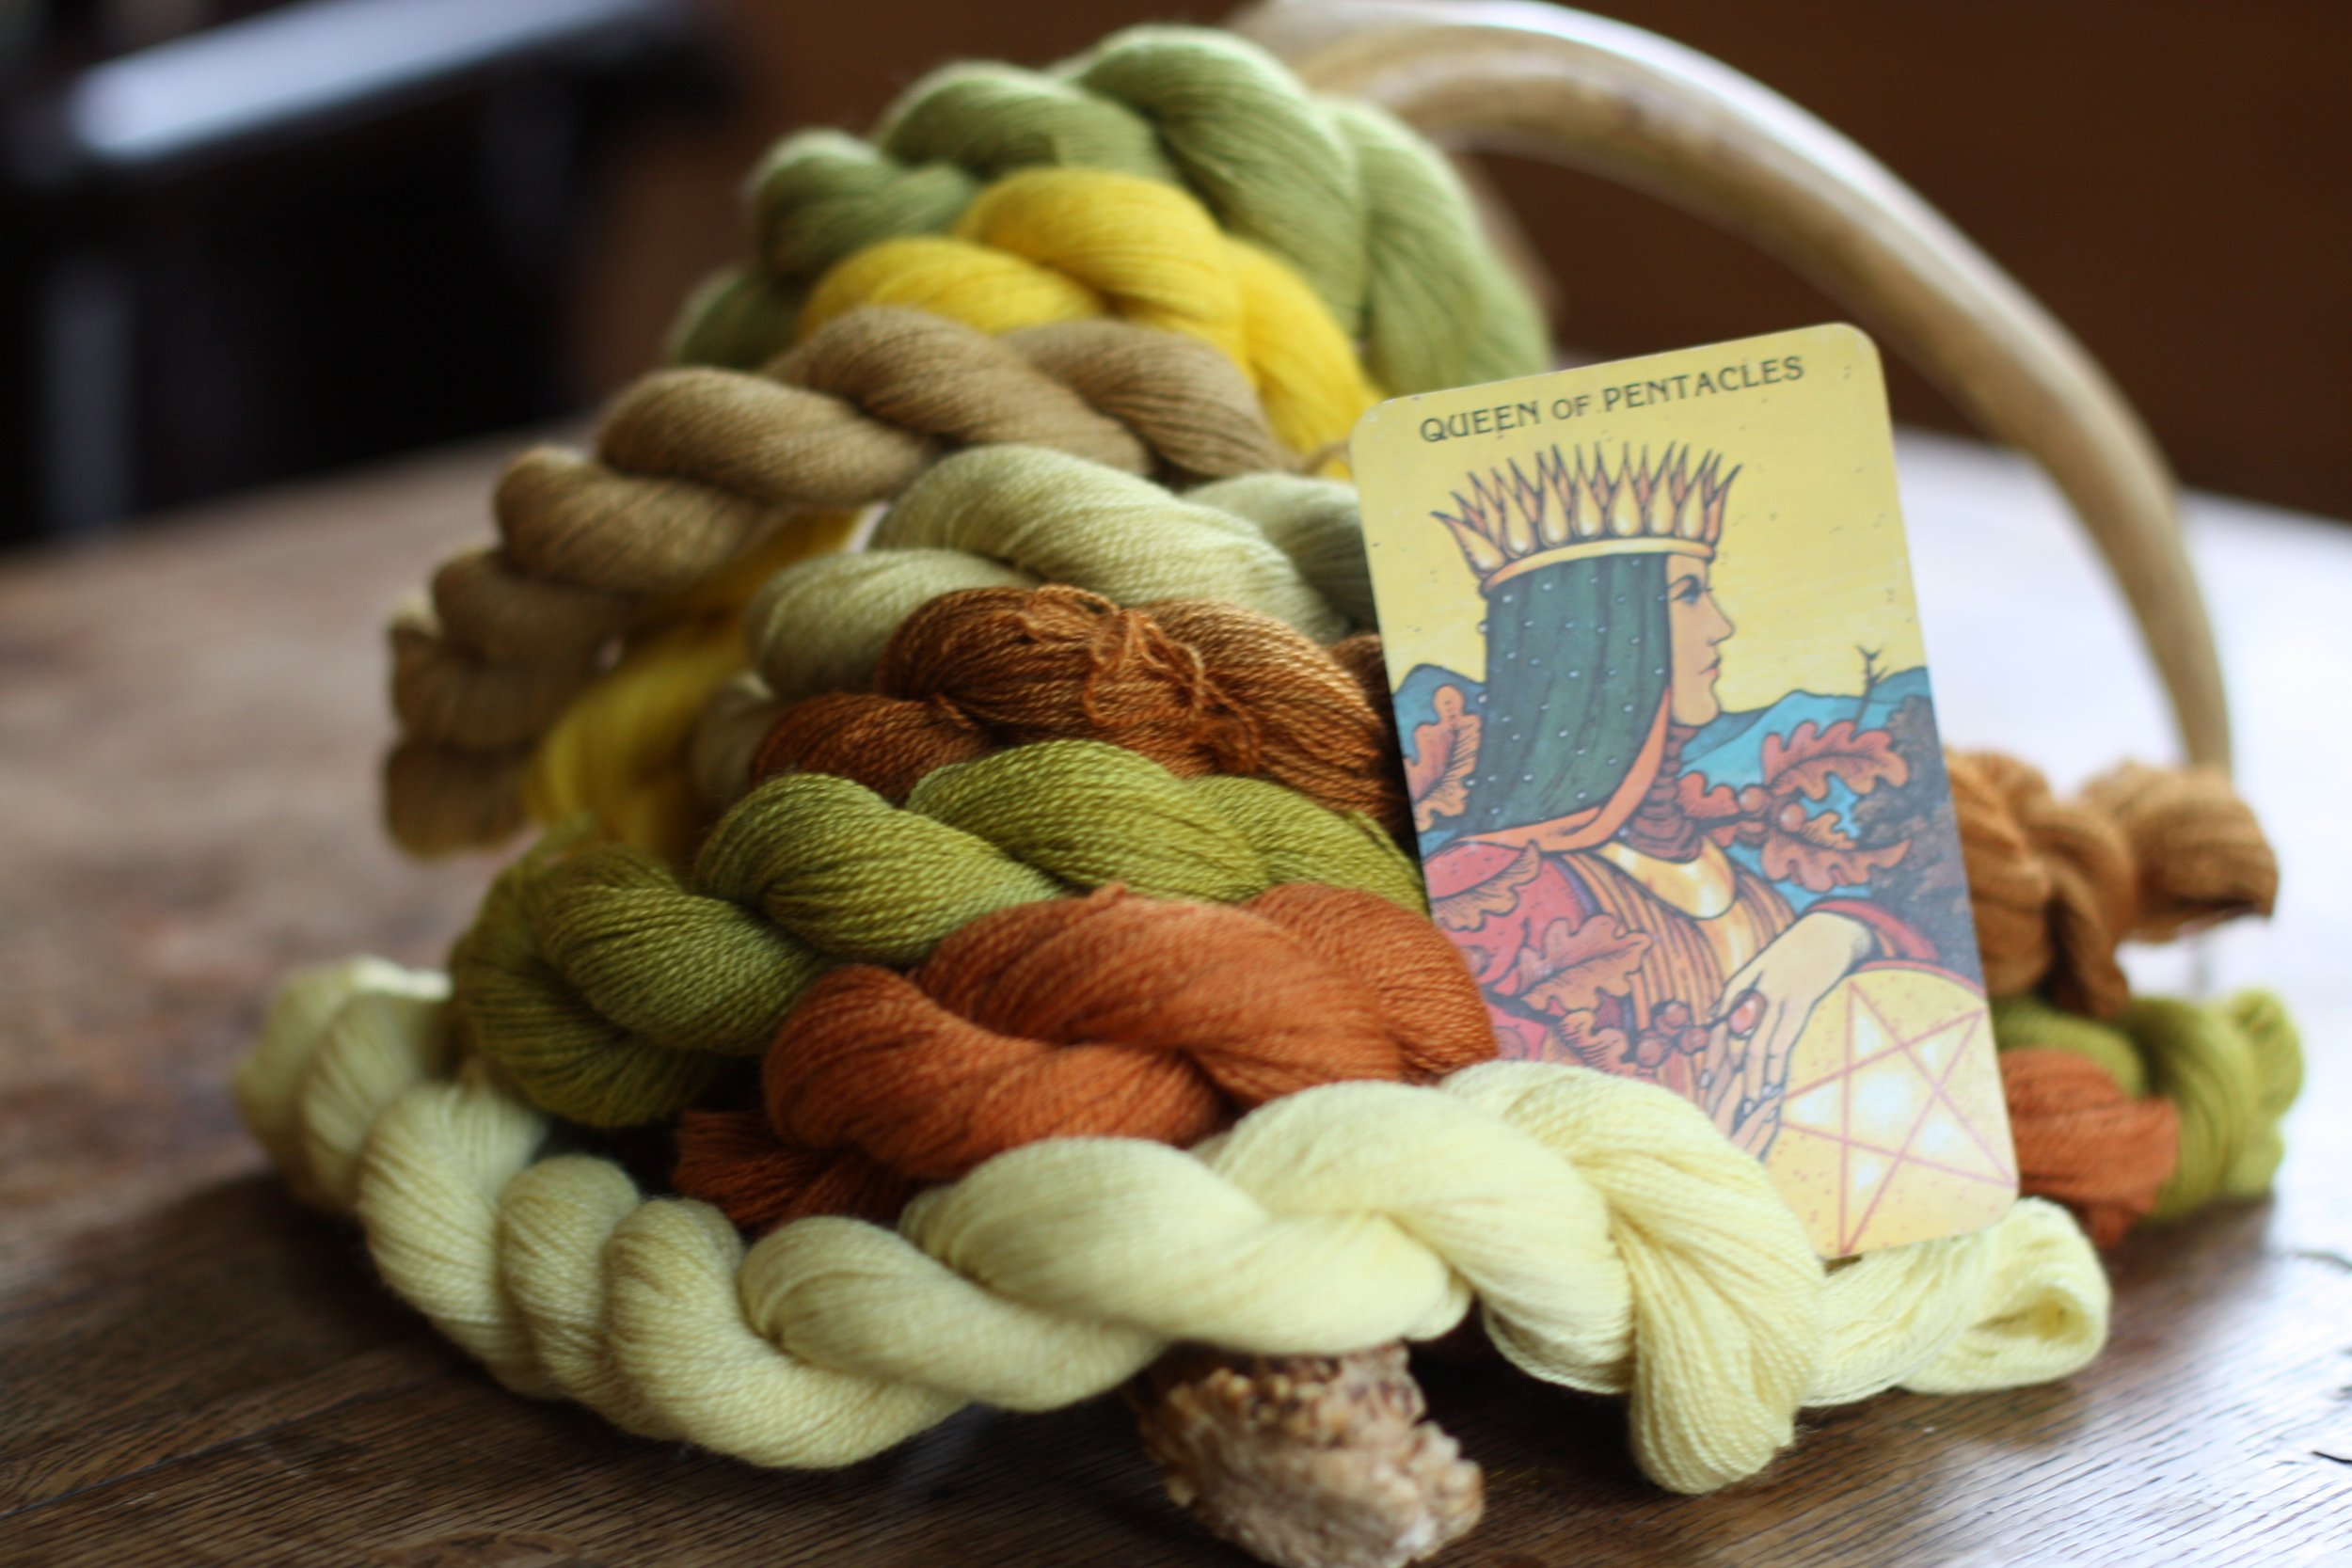 The Queen of Pentacles tarot card and skeins of wool dyed with plant dyes pose with an antler | 14 Mile Farm Handweaving